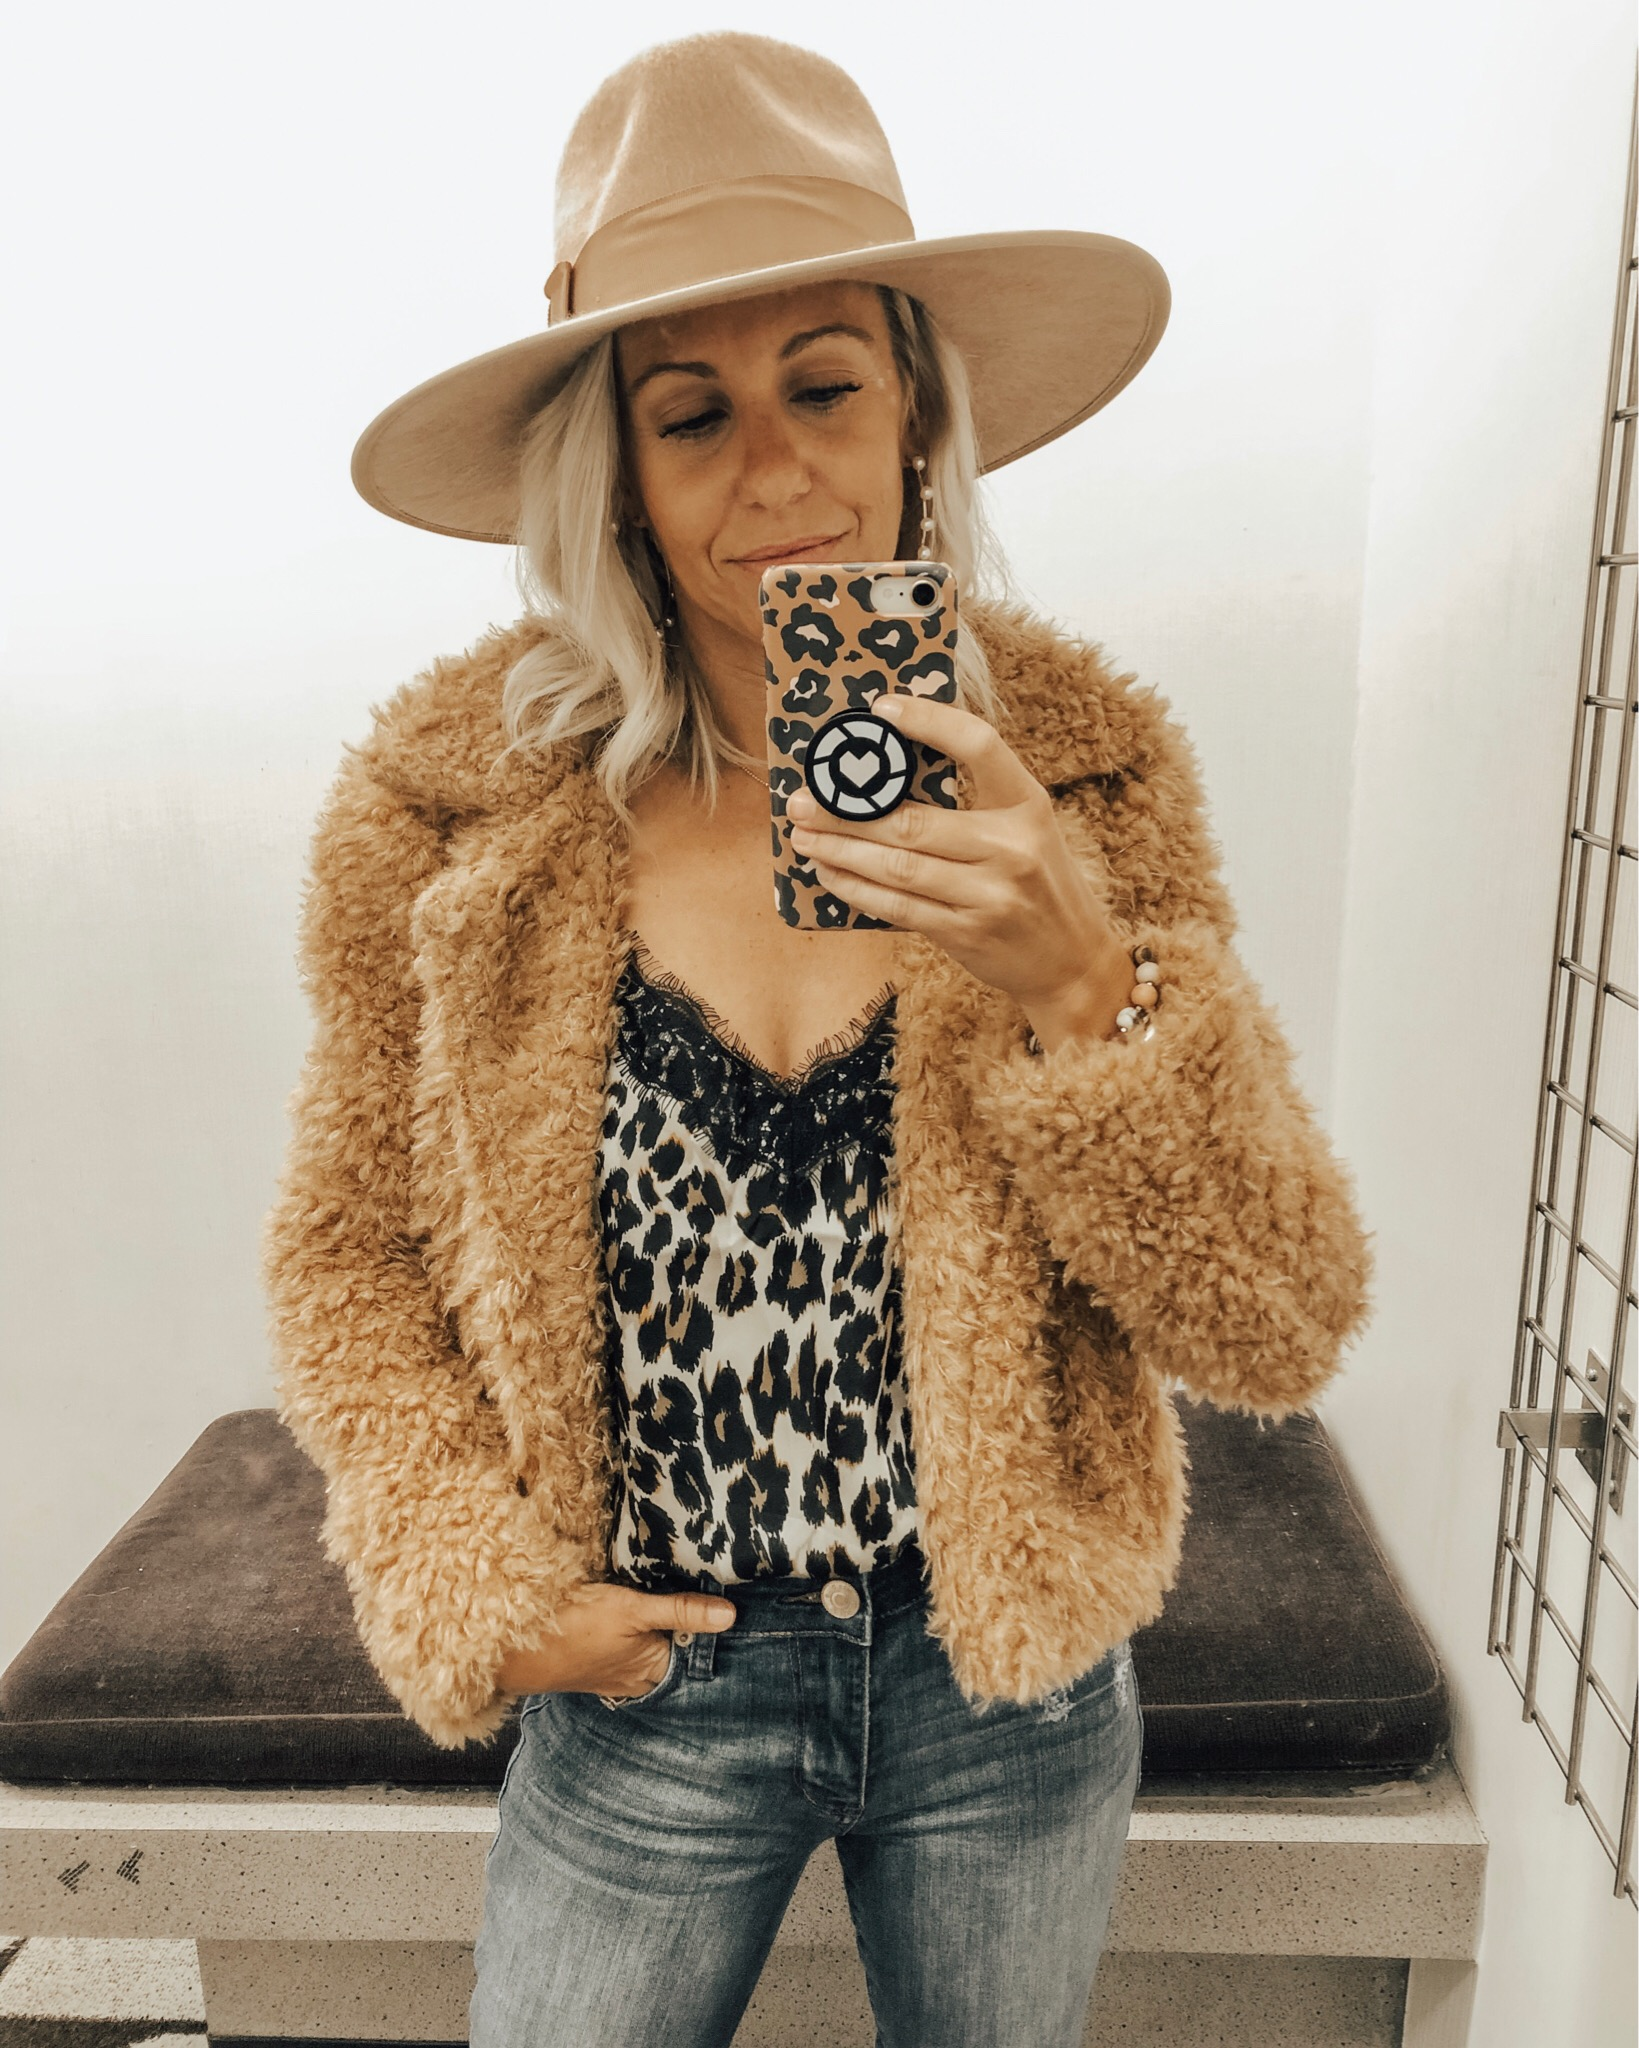 NSALE FAVORITES + AFFORDABLE DUPES- Jaclyn De Leon Style + Fall fashion is here with the Nordstrom Anniversary Sale. There's tons of animal print, fall boots + more so I'm sharing all my favorites as well as some affordable dupe options.